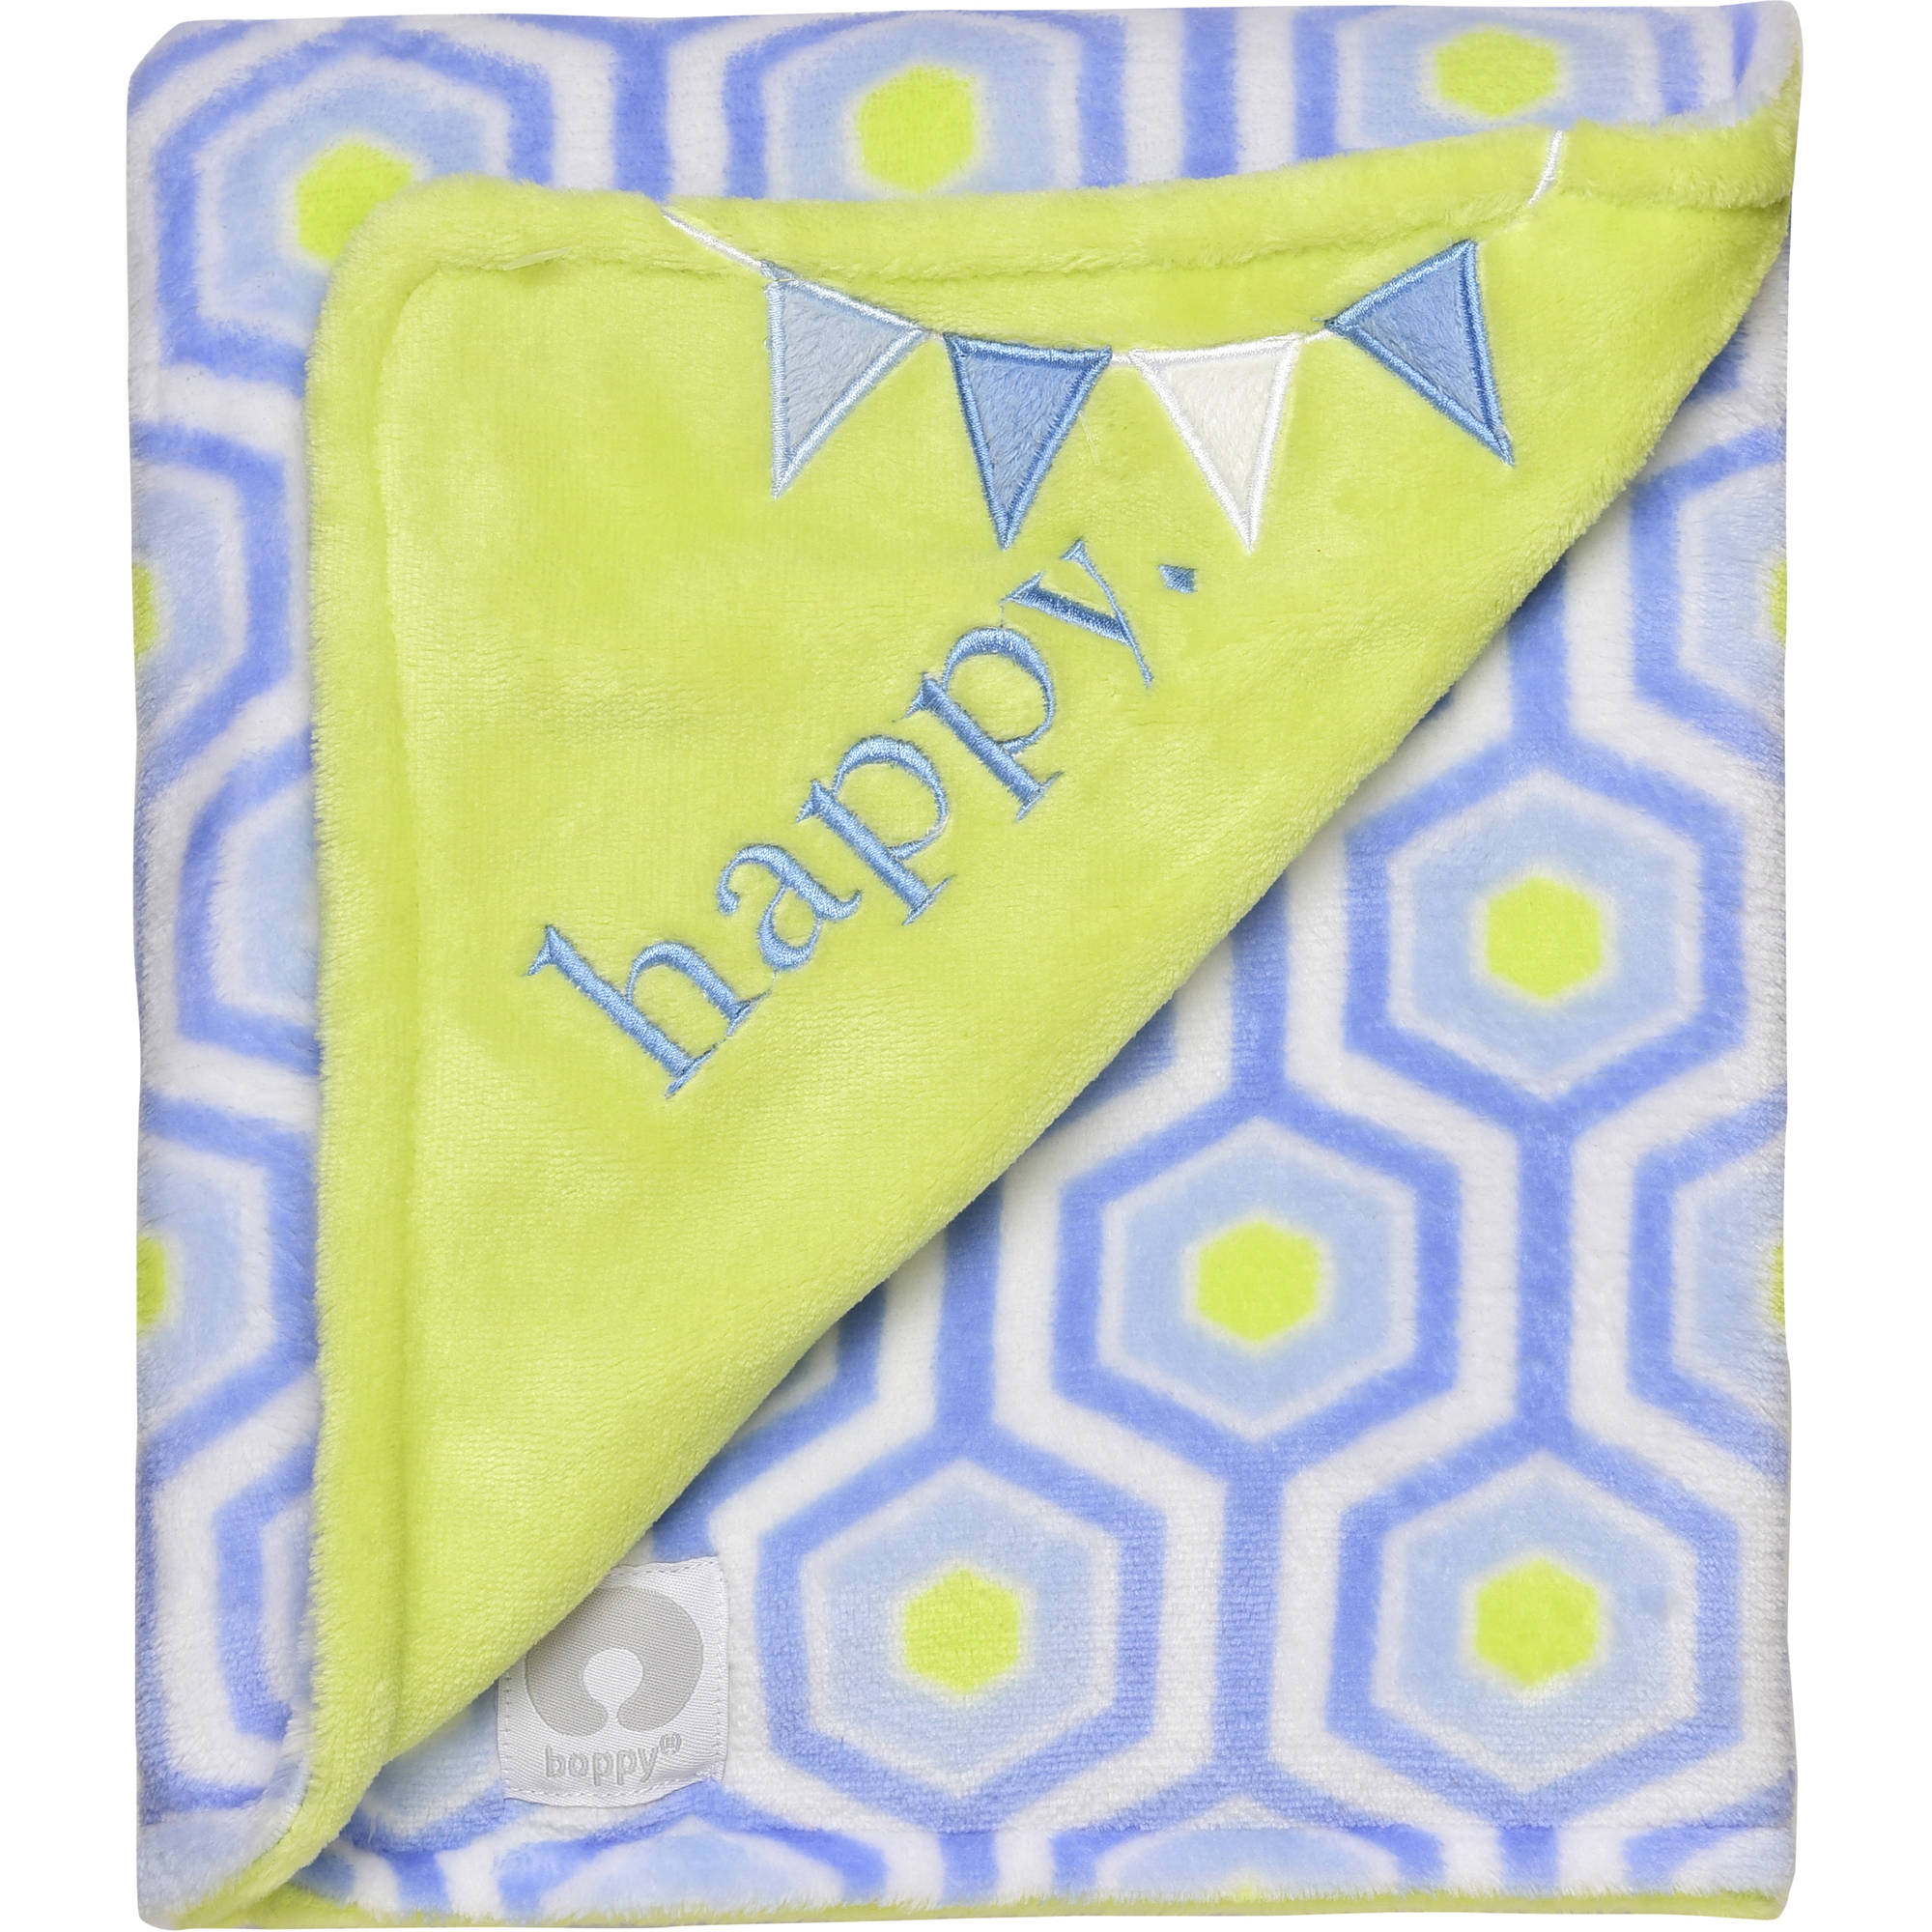 Boppy Luxurious Plush Reversible Appliqued Blanket, Happy/Hexagon Print